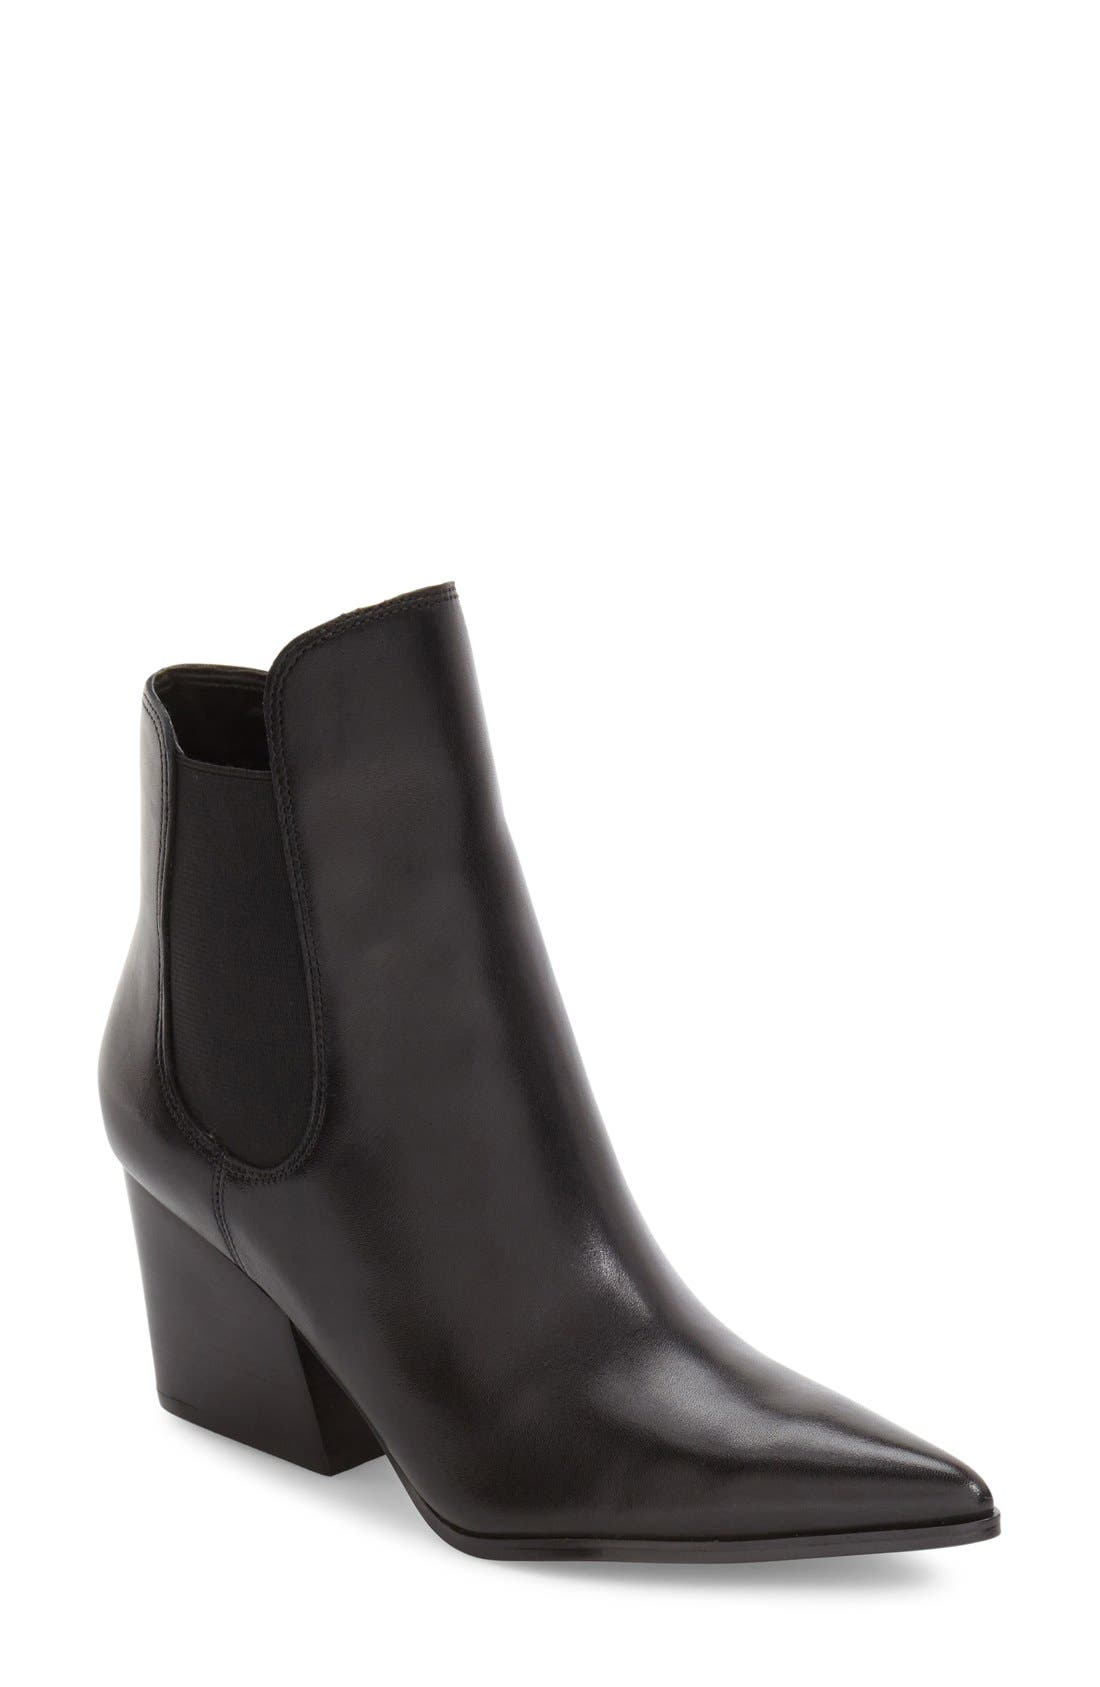 Alternate Image 1 Selected - KENDALL + KYLIE 'Finley' Chelsea Boot (Women)